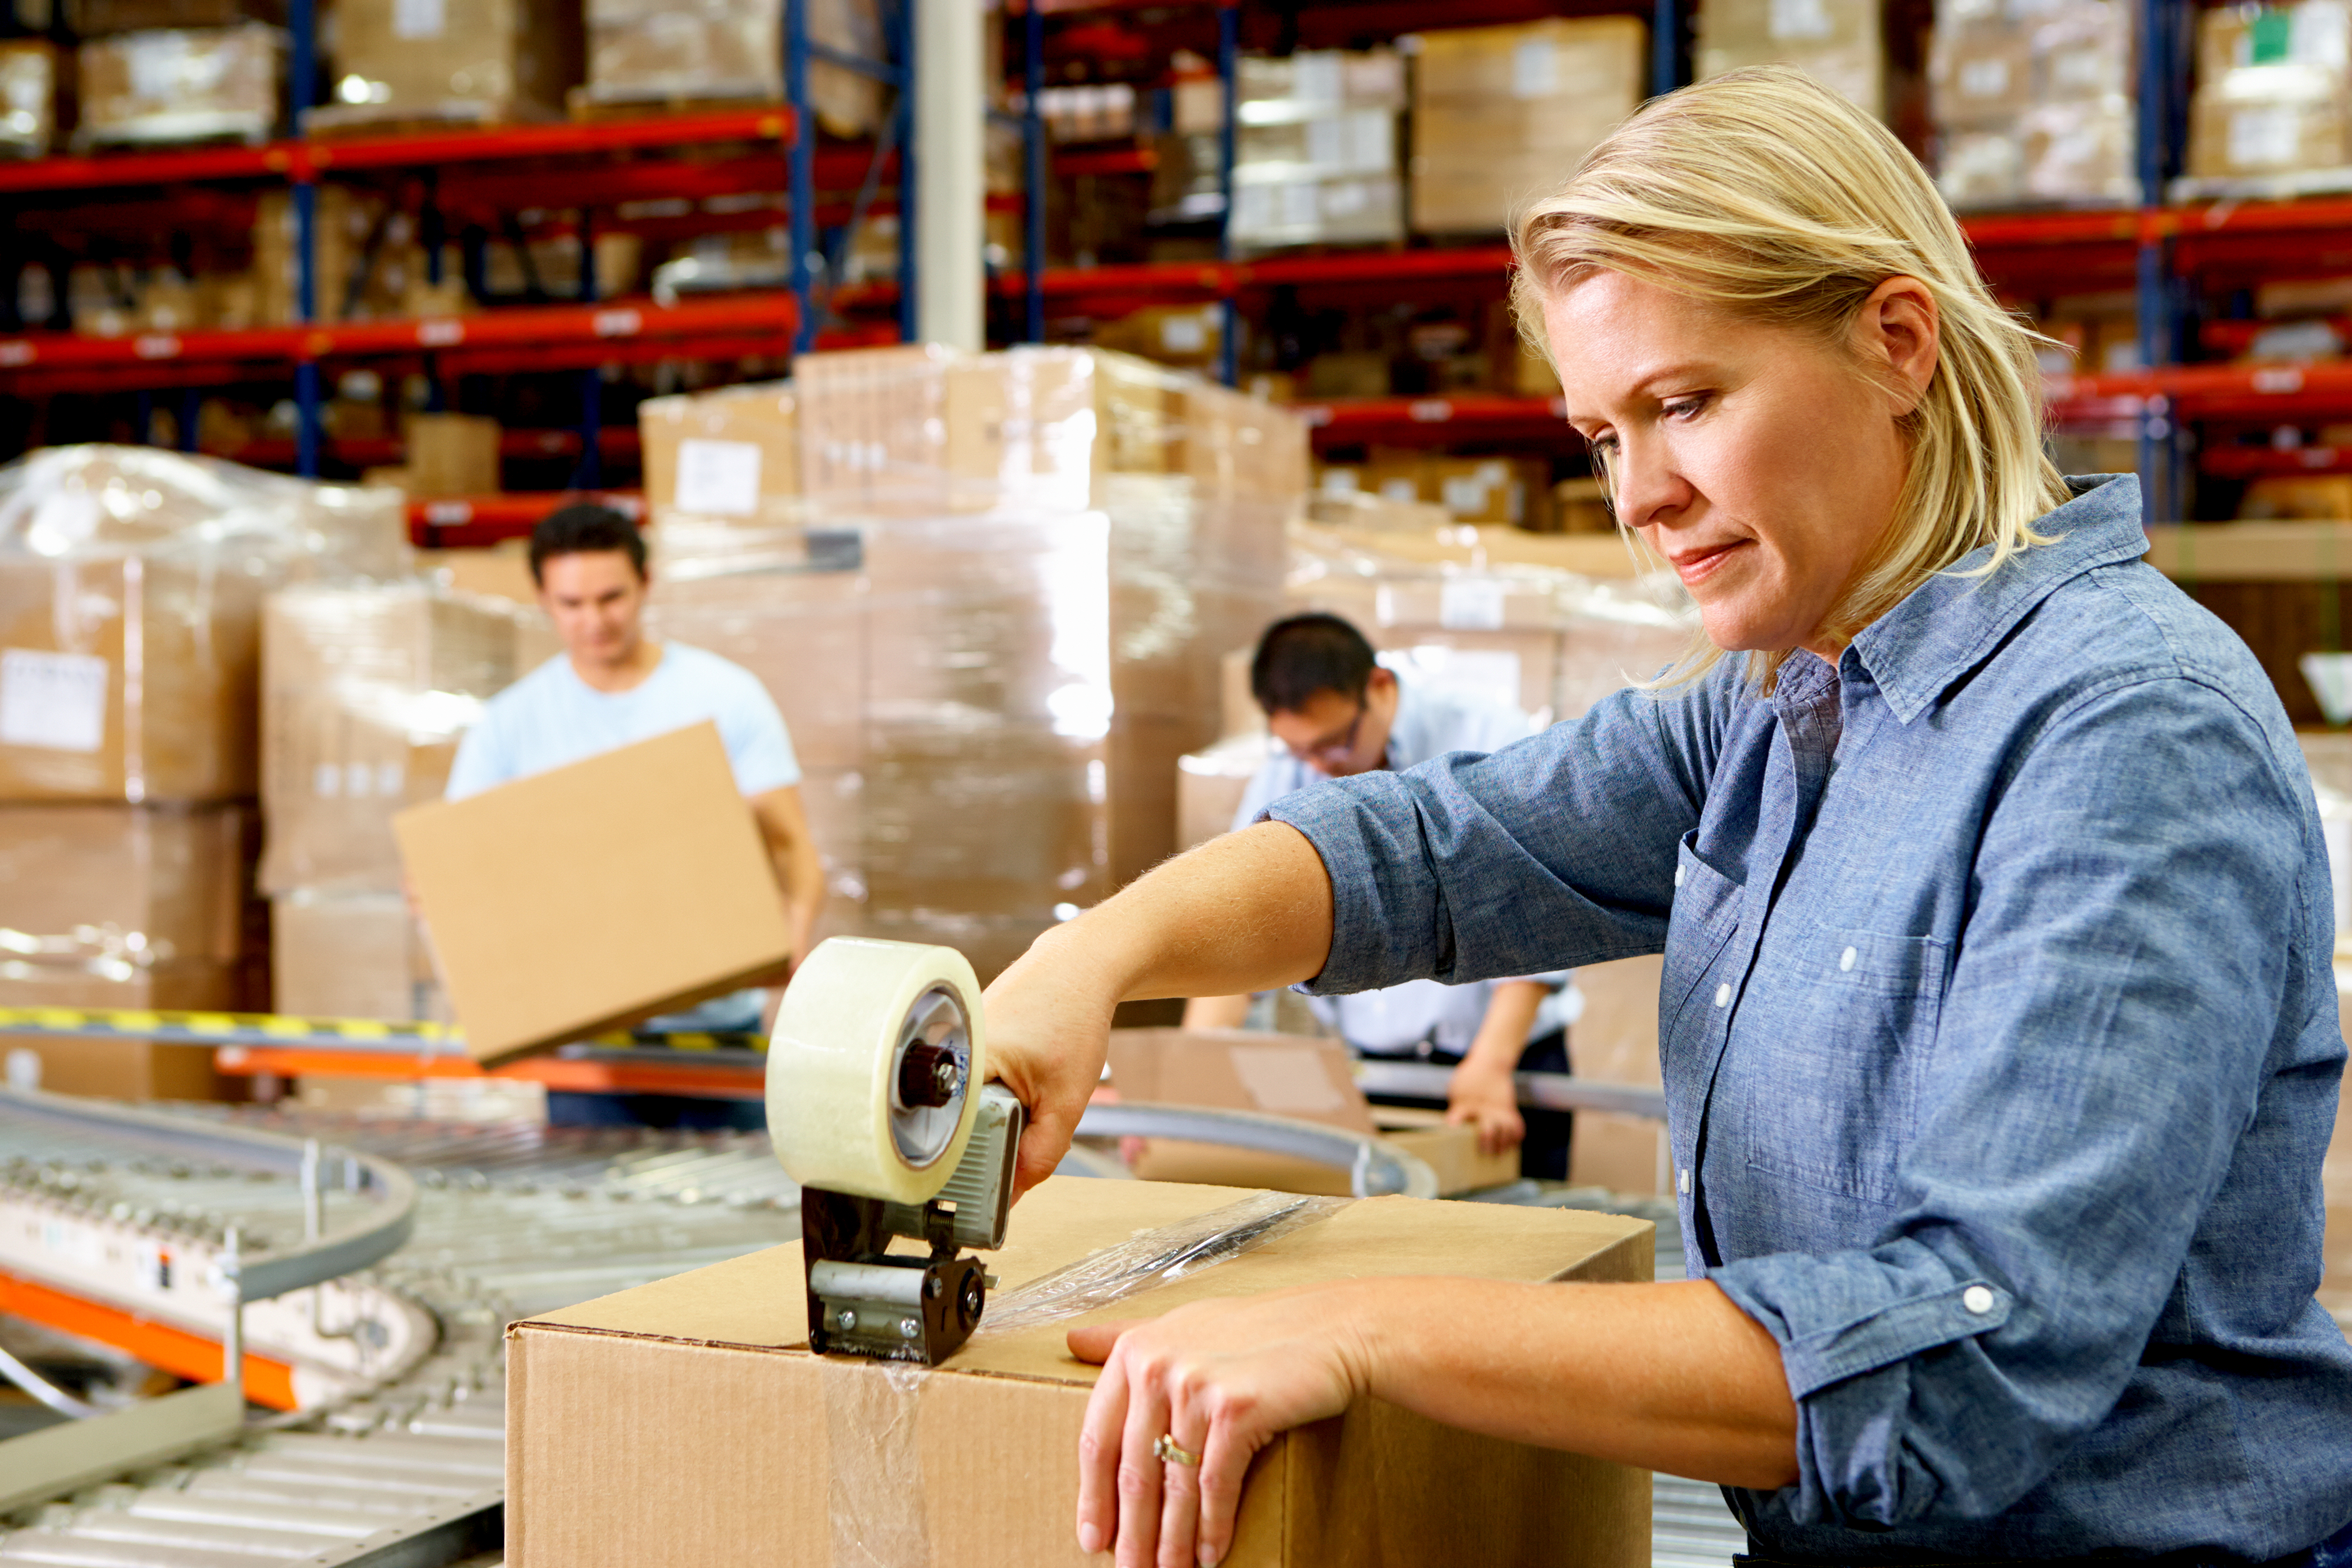 Discount shipping for Warehouses and Fulfillment Centers